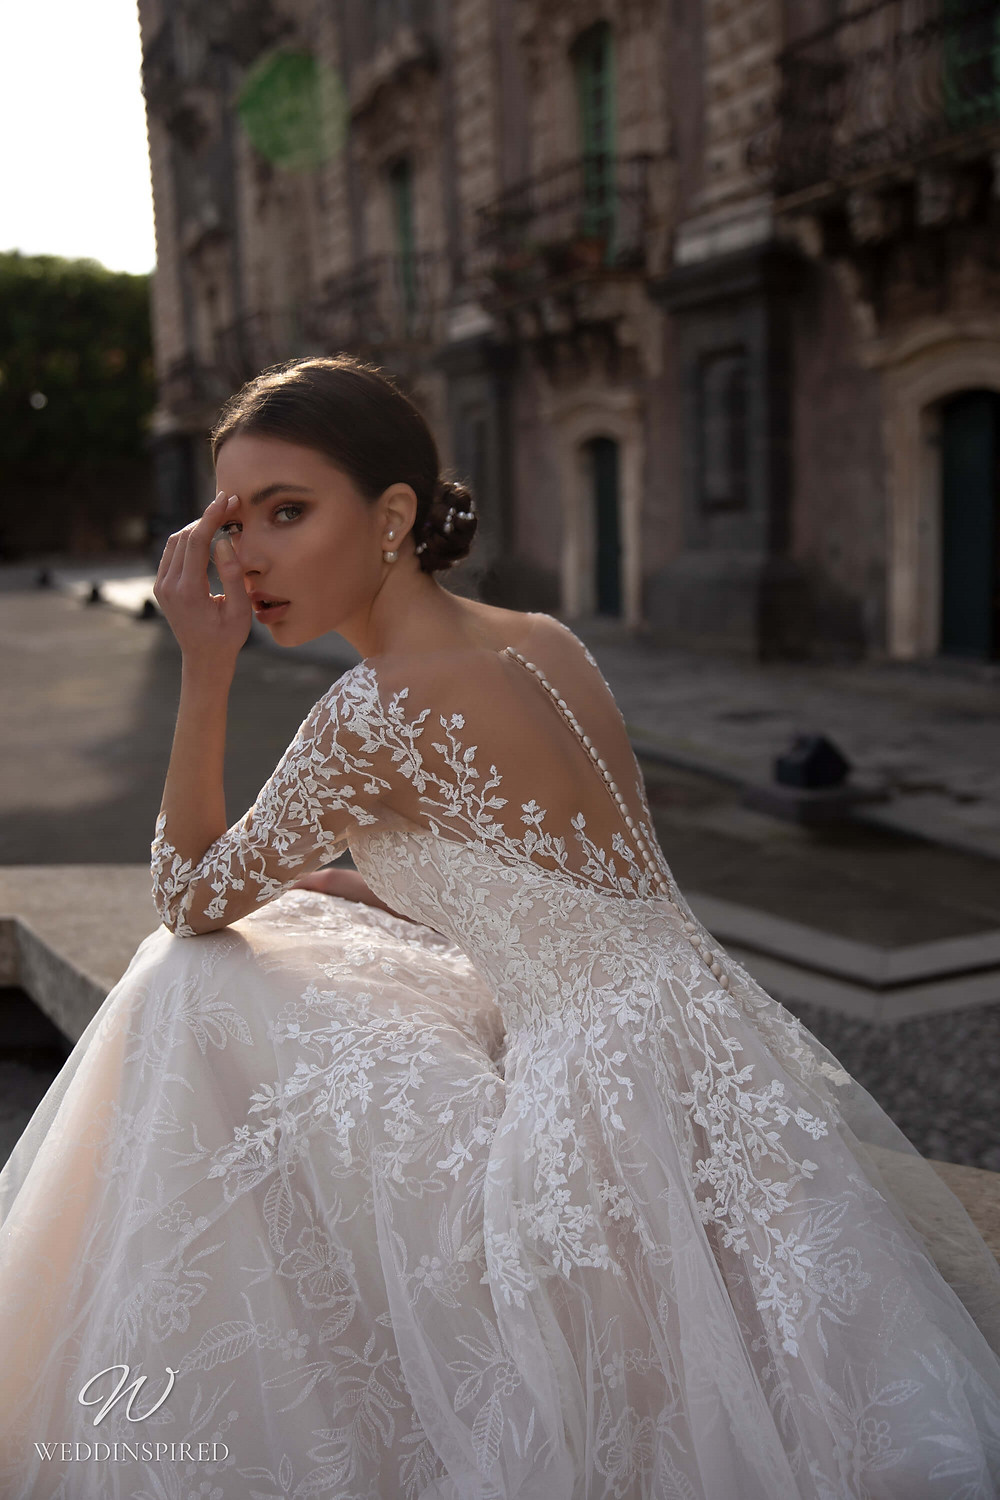 A Naviblue lace ball gown wedding dress with long illusion sleeves